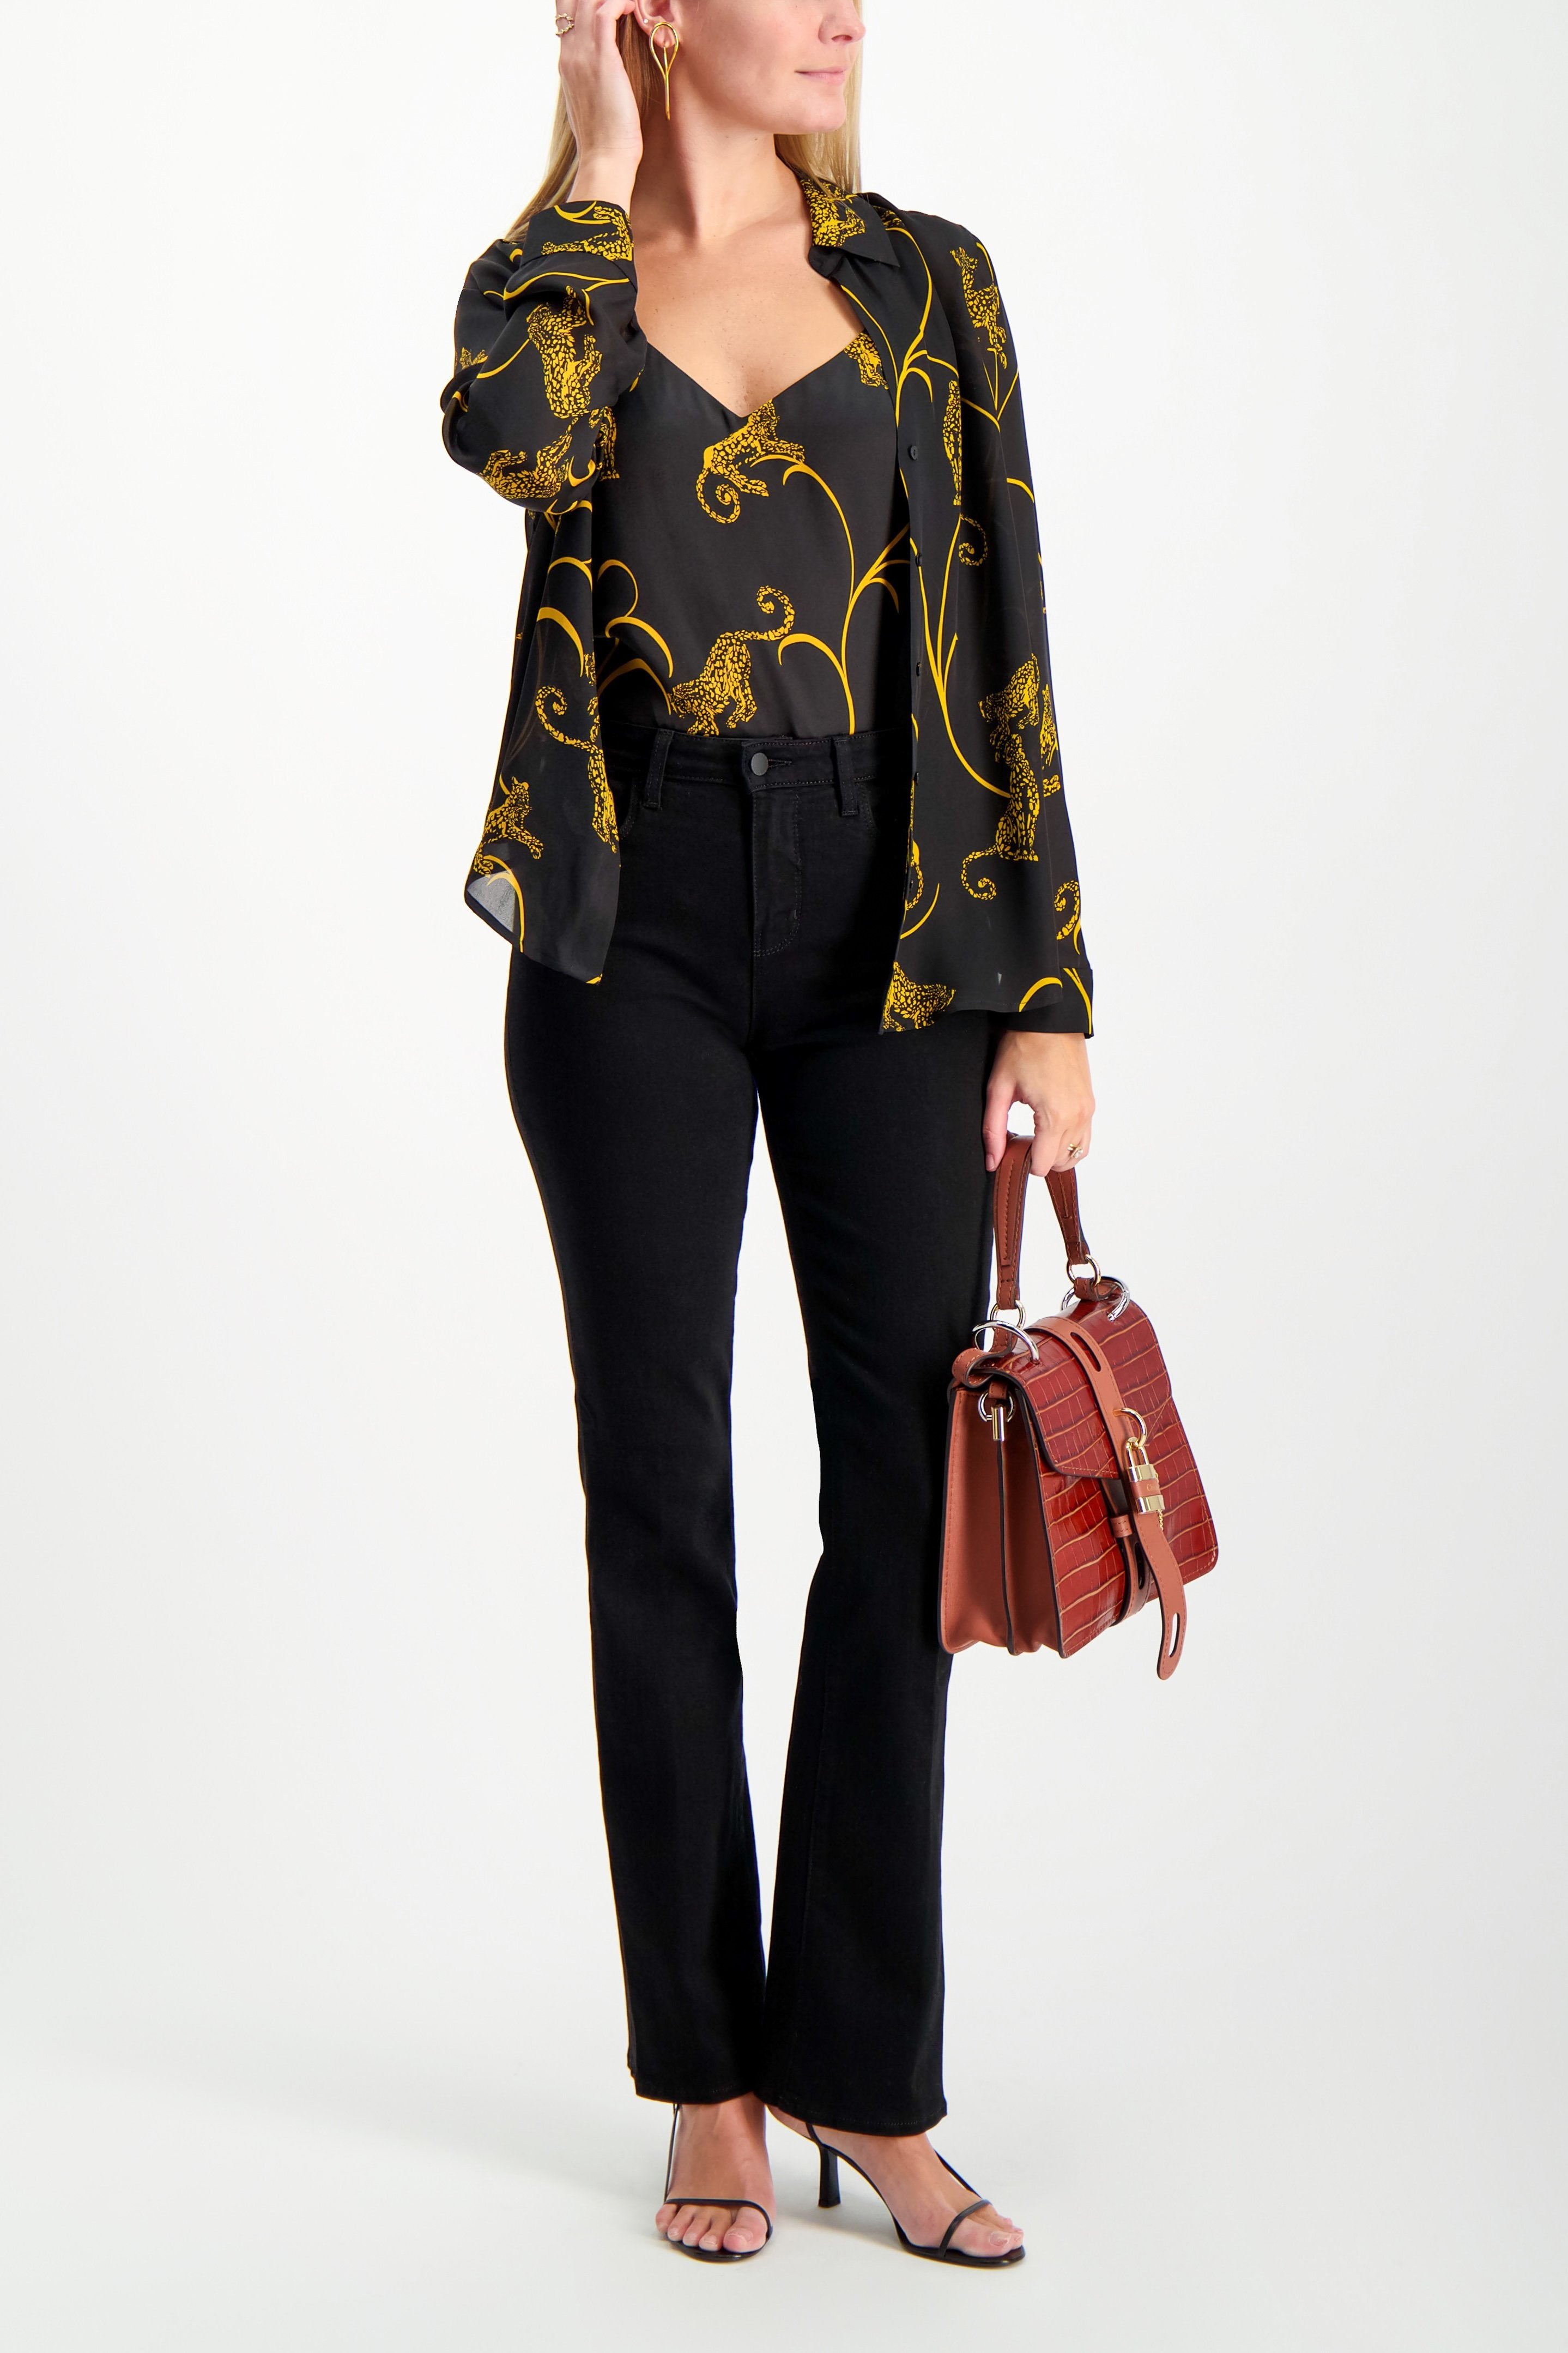 Full Body Image Of Model Wearing Long Sleeve Nina Blouse